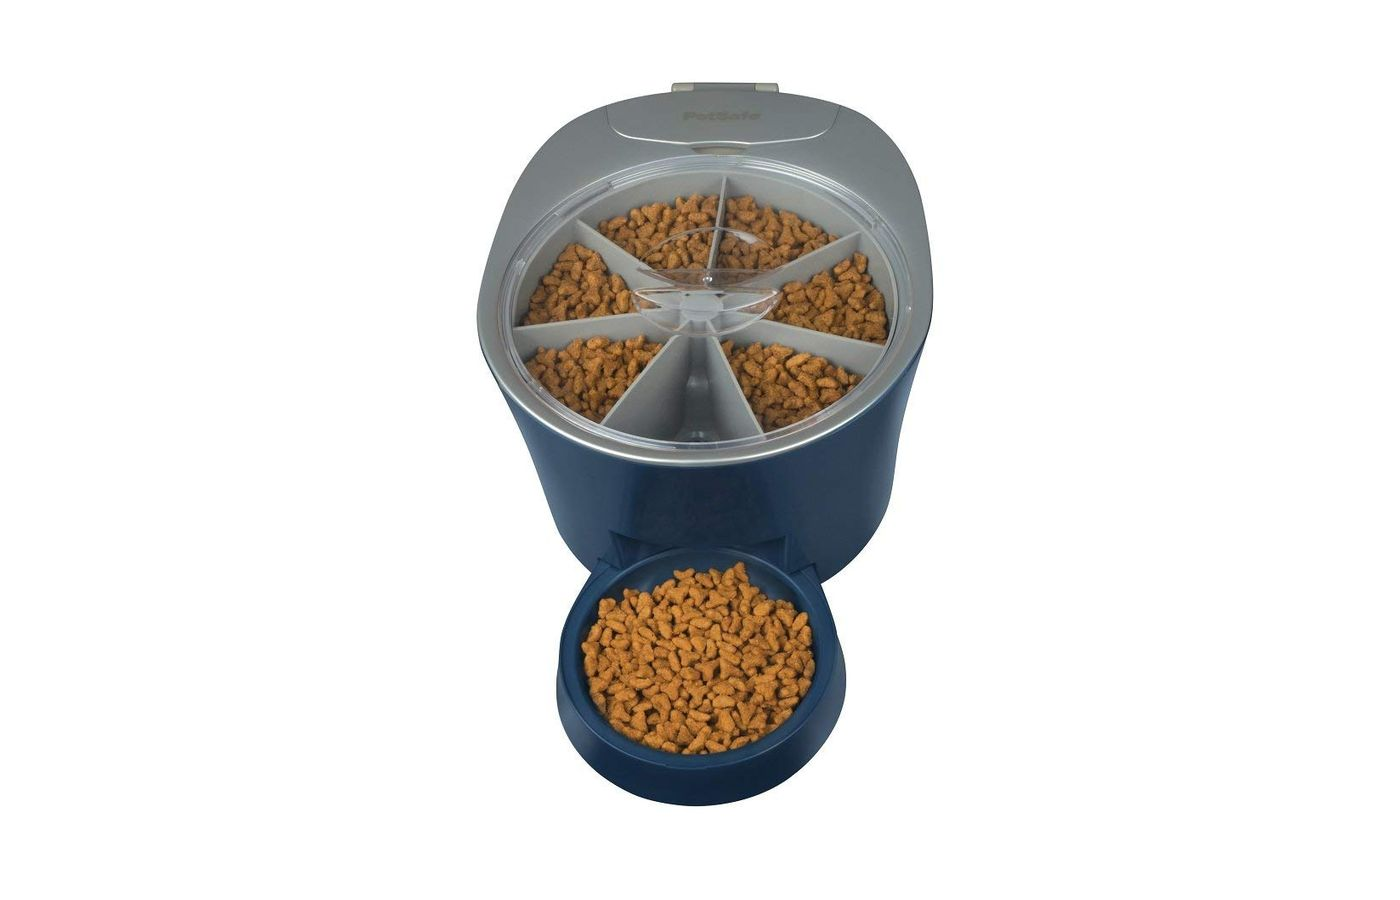 PetSafe Six Meal Automatic Cat Feeder